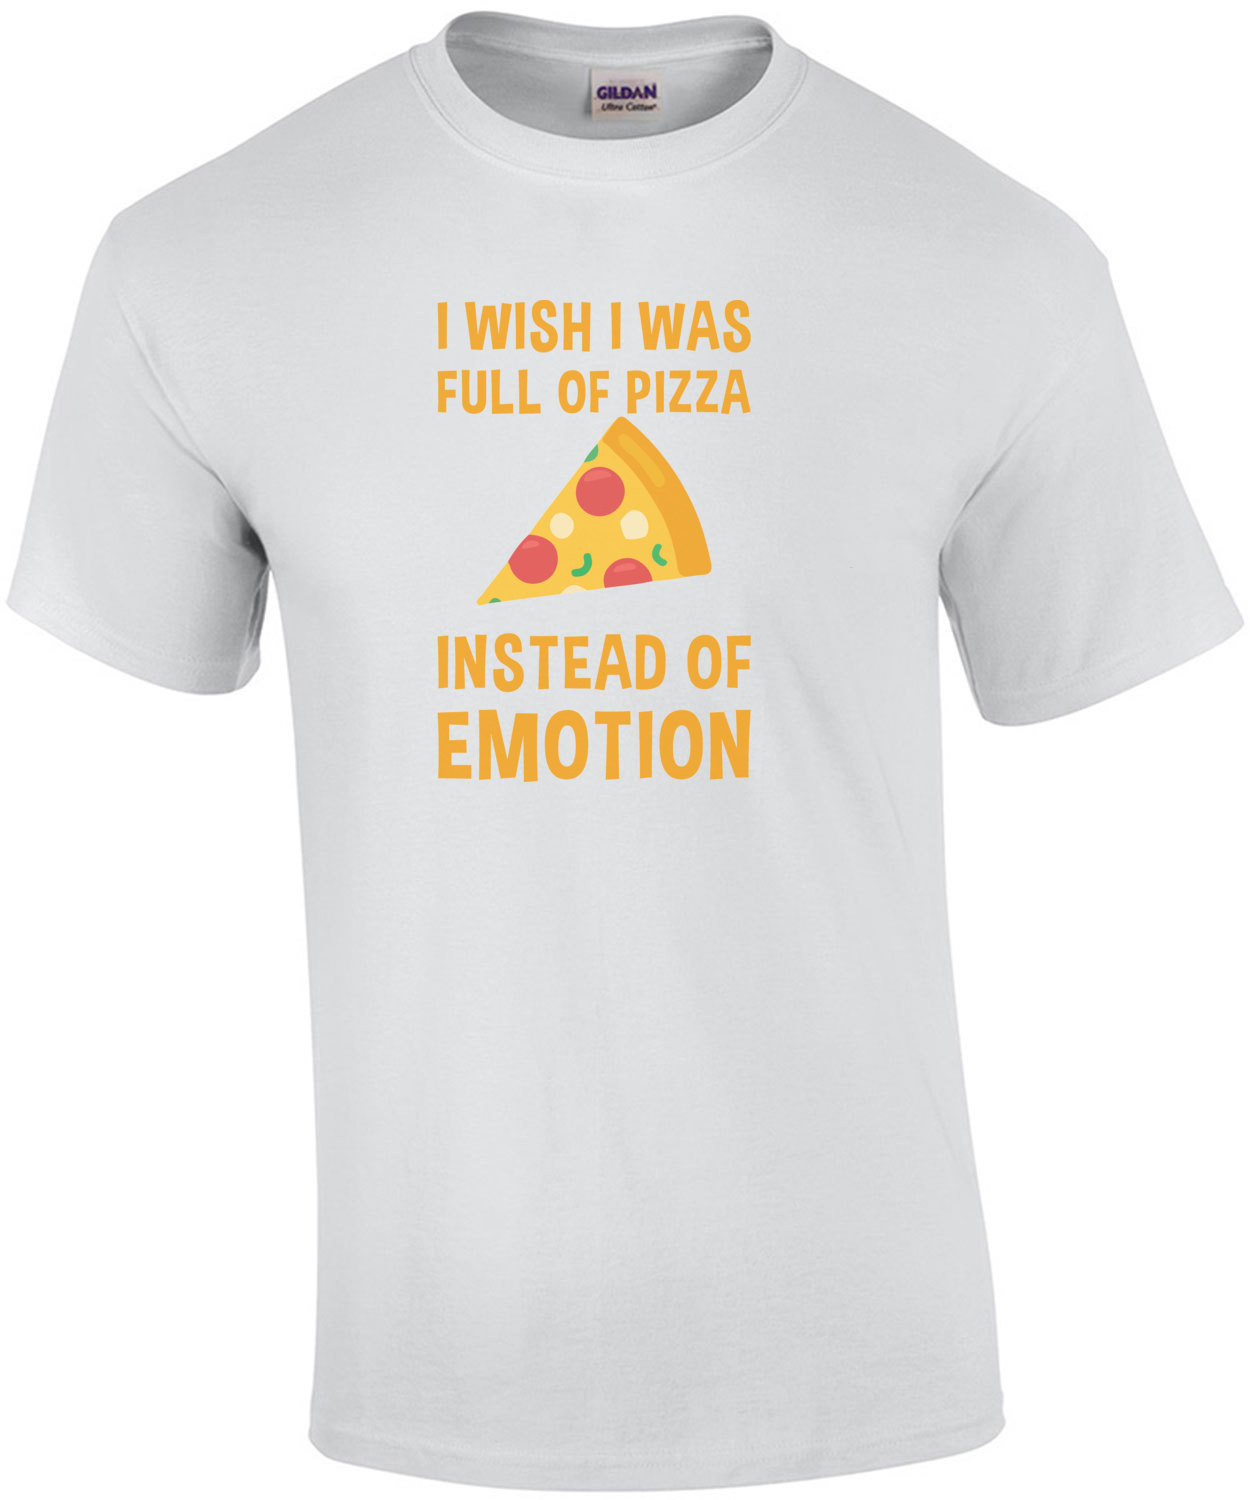 I wish I was full of pizza instead of emotion - funny pizza t-shirt